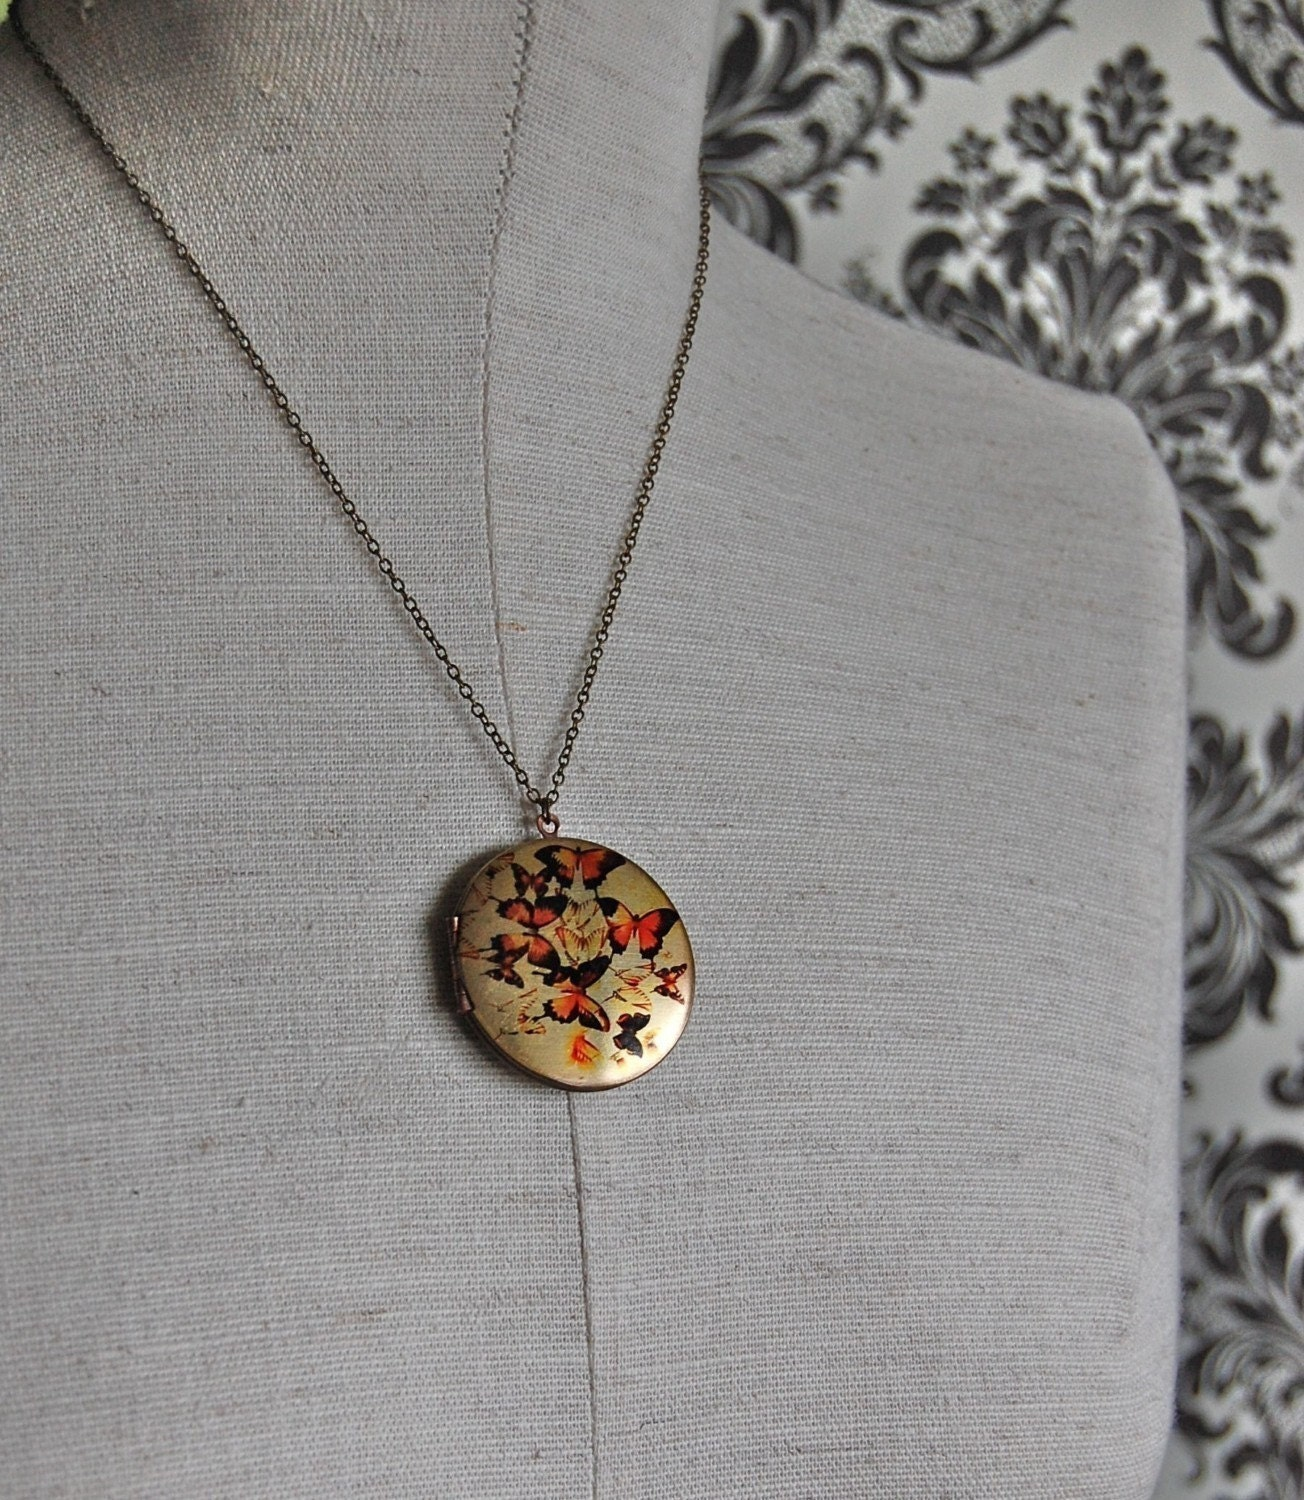 The Flock of Butterflies Locket - Vintage